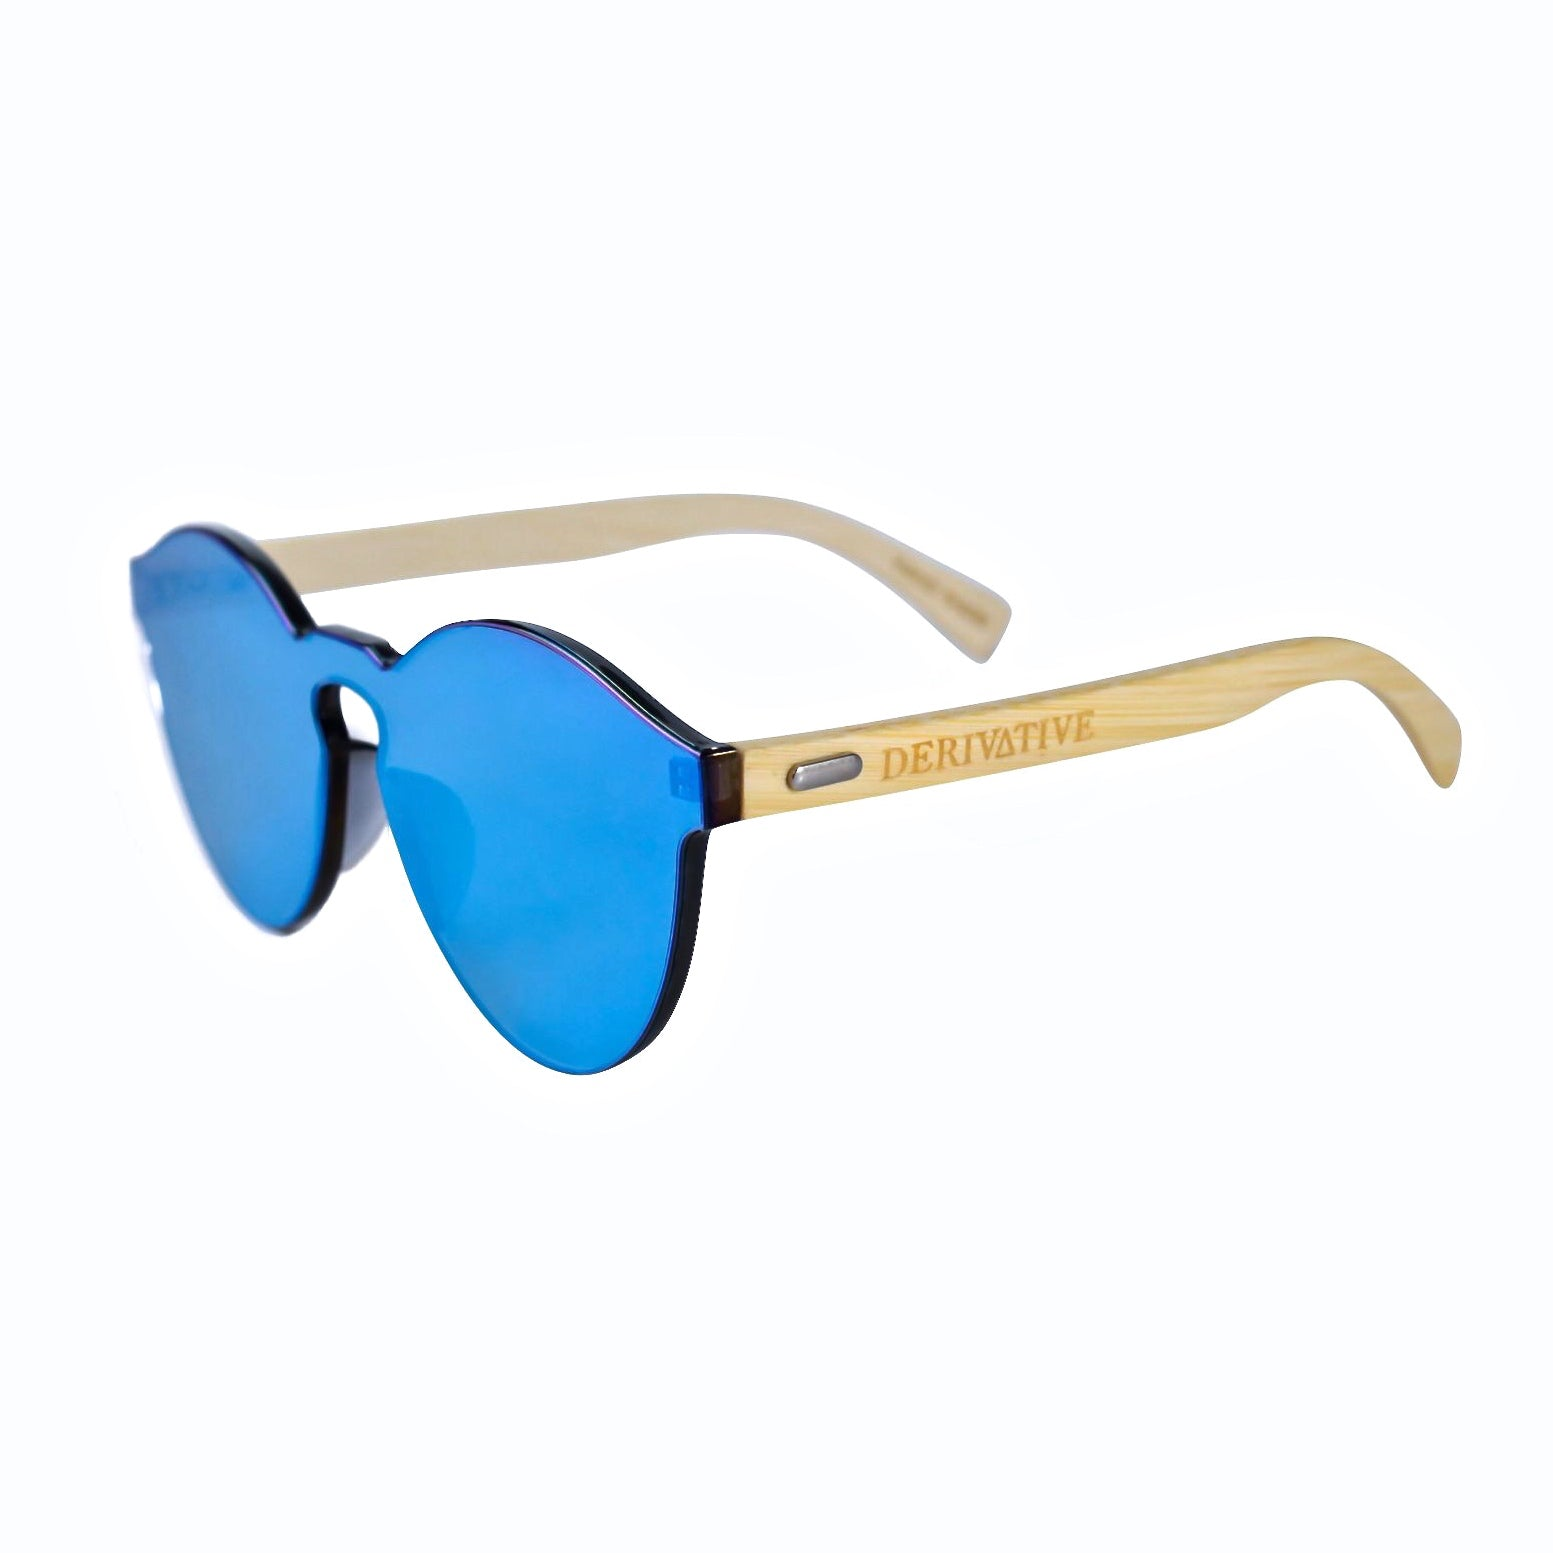 Blue Infinity Lens Rimless Sunglasses by Derivative